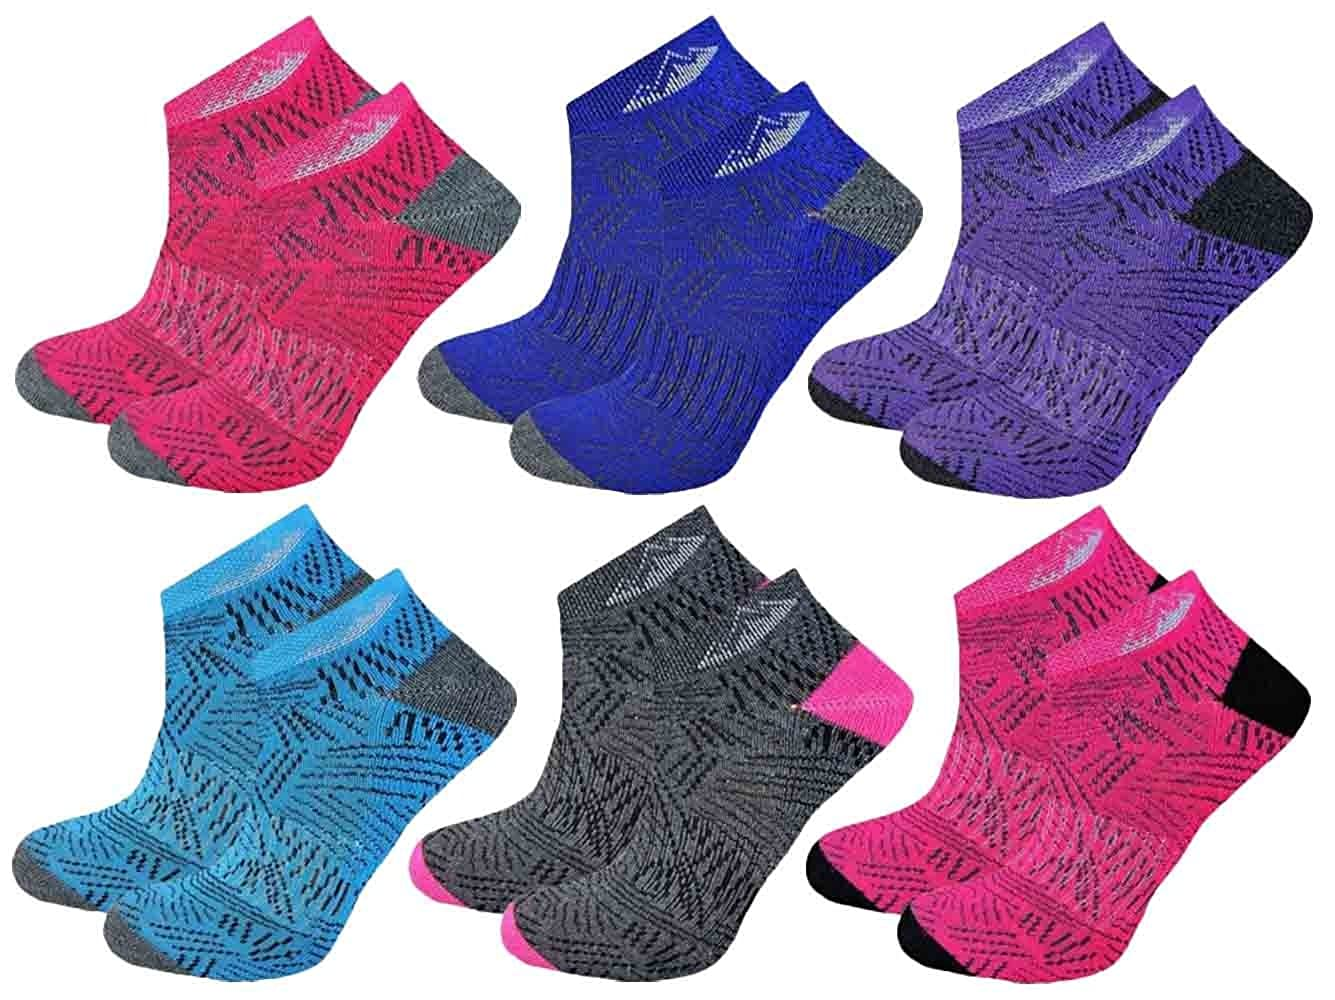 6 Pairs Ladies Prohike Cushioned Trainer Socks, Dash Multi Coloured, Size 4-8